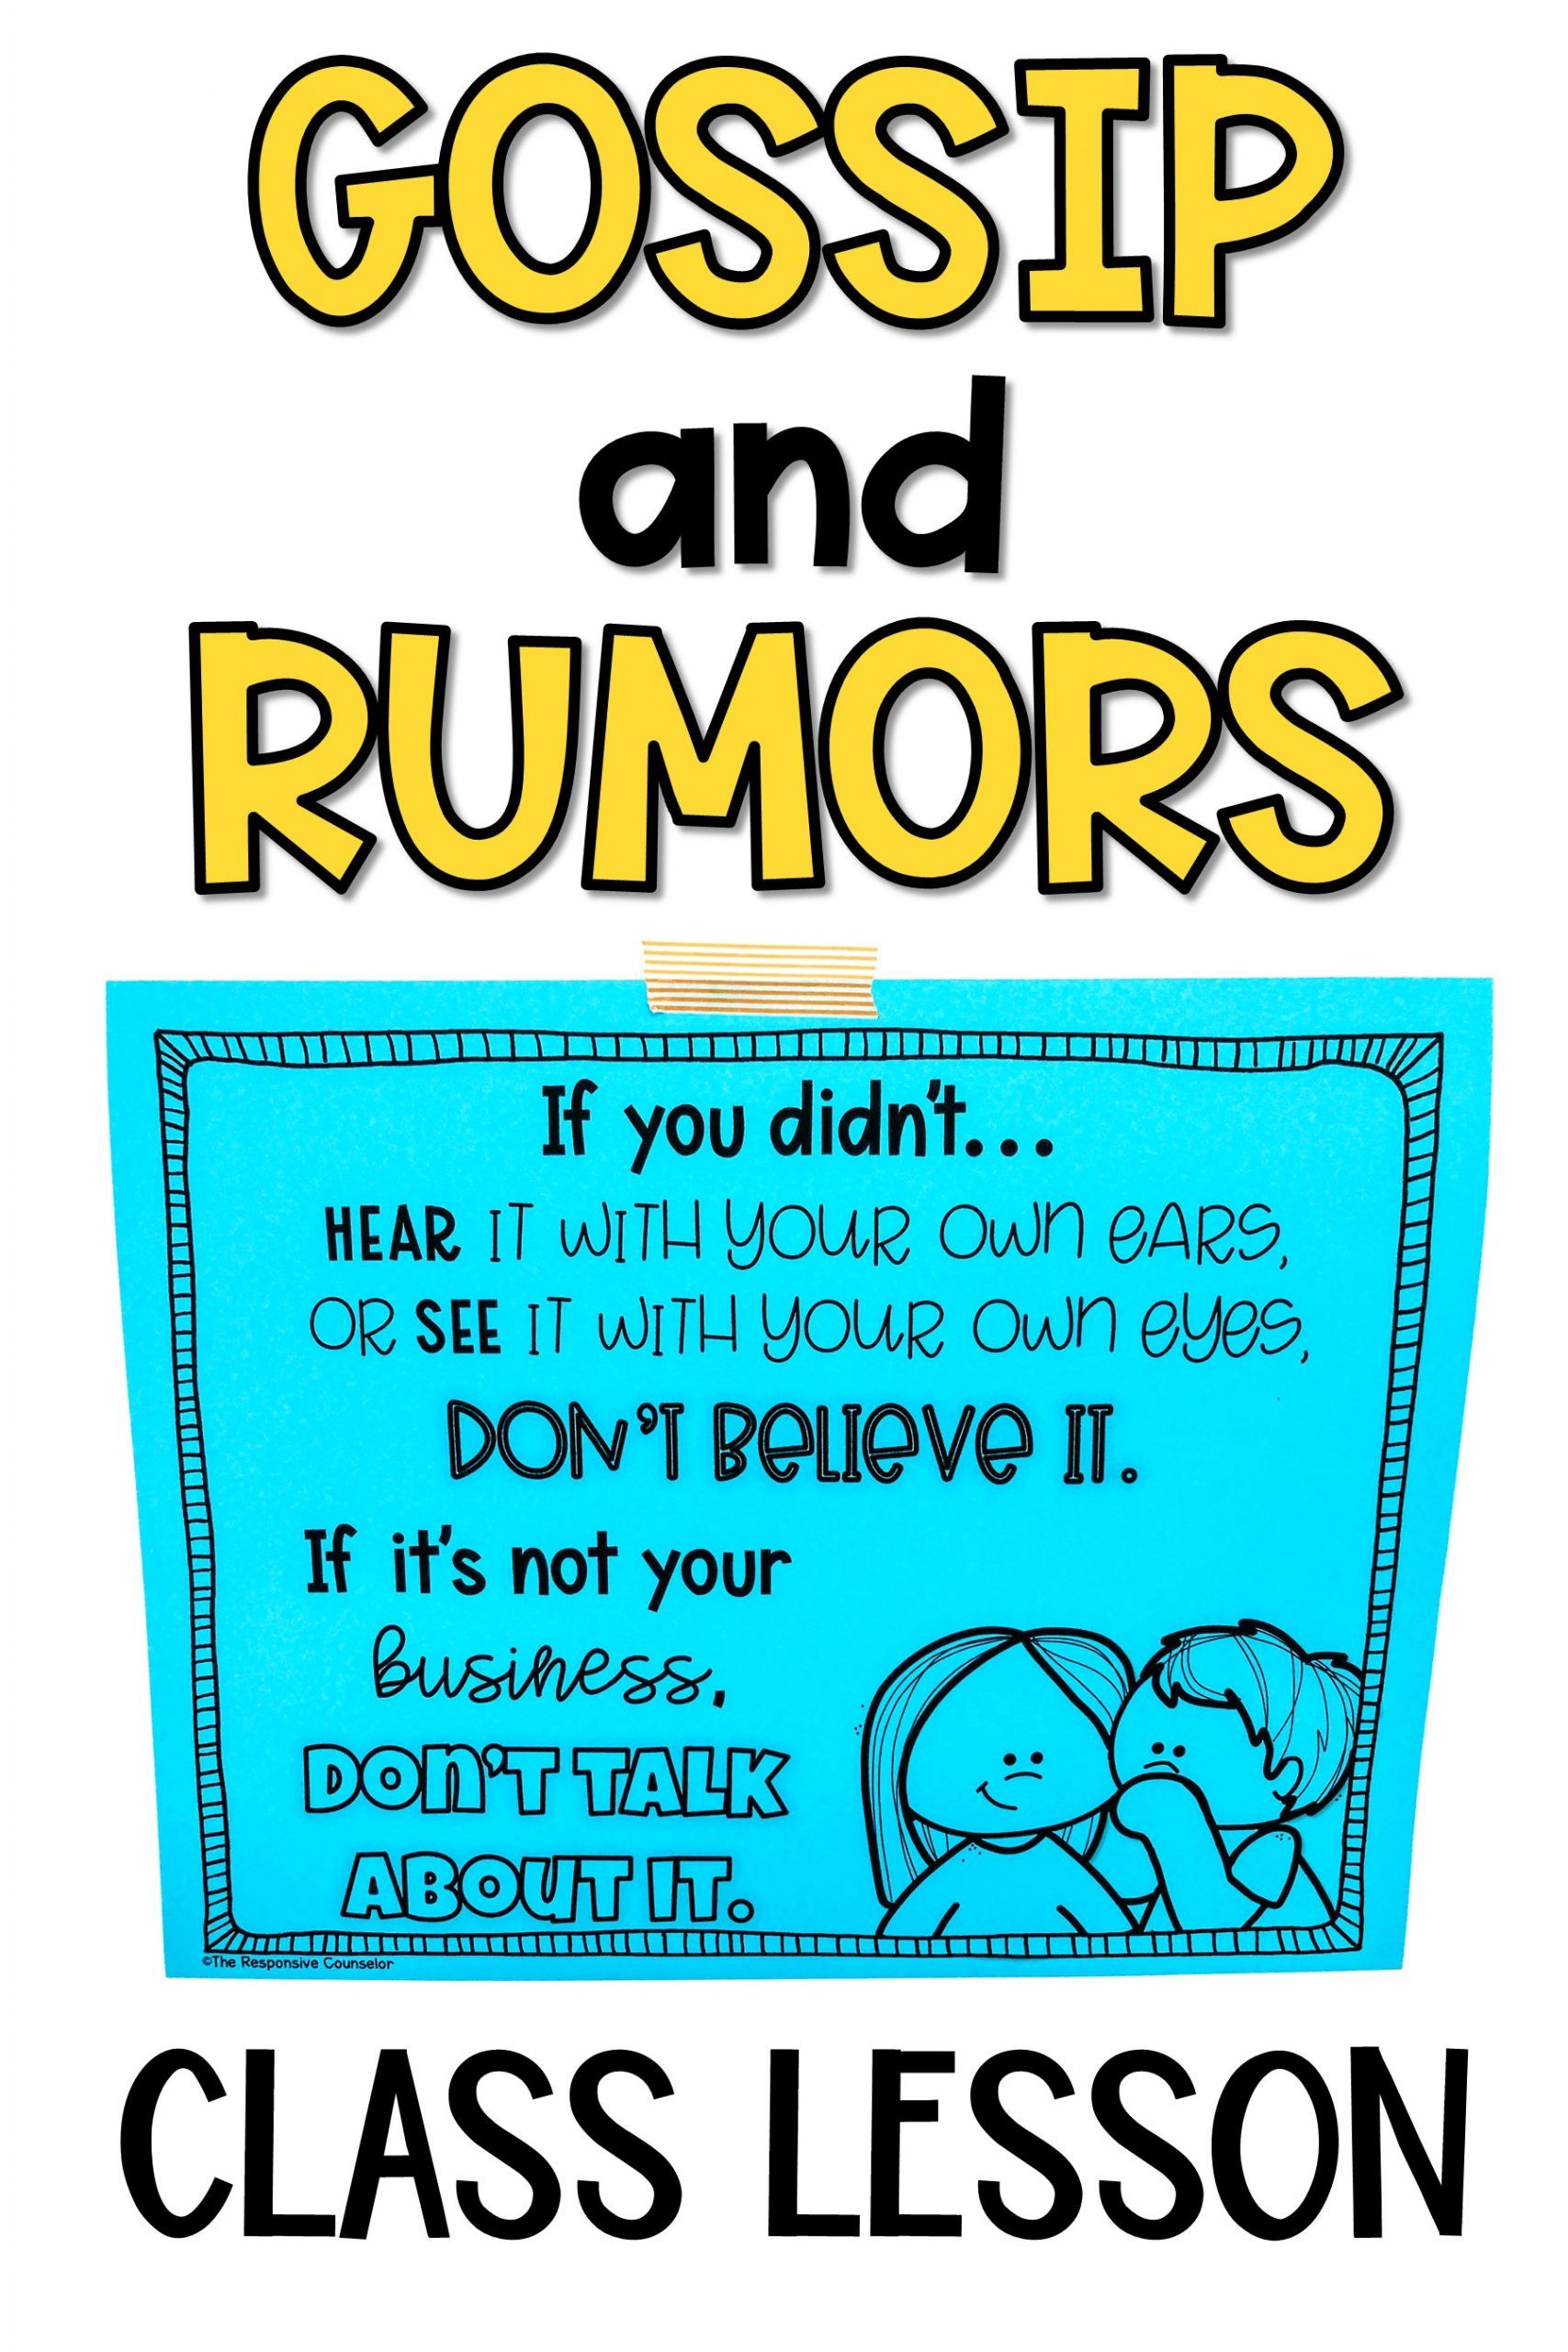 Gossip and Rumors Lesson in 2020 Curriculum mapping